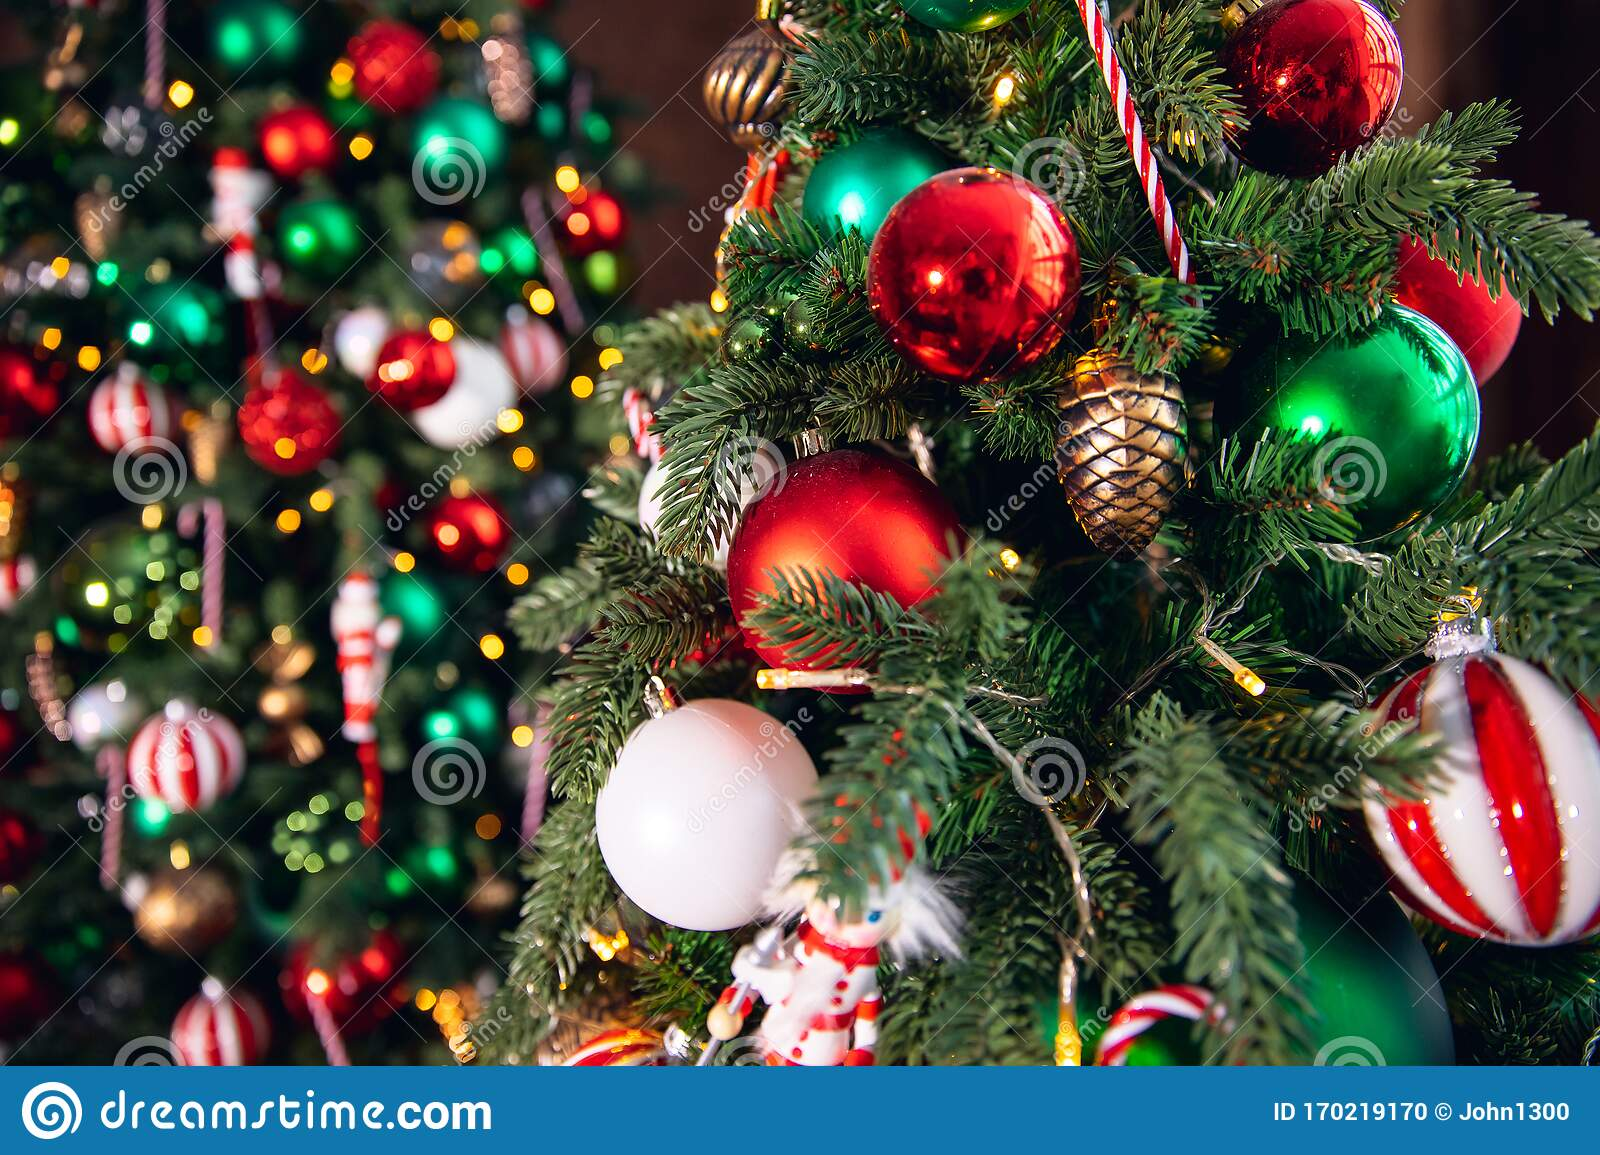 Decorated Christmas Tree Red And Green Color Close Up Of Toys And Decor Striped Candy Stock Photo Image Of Holiday Lights 170219170